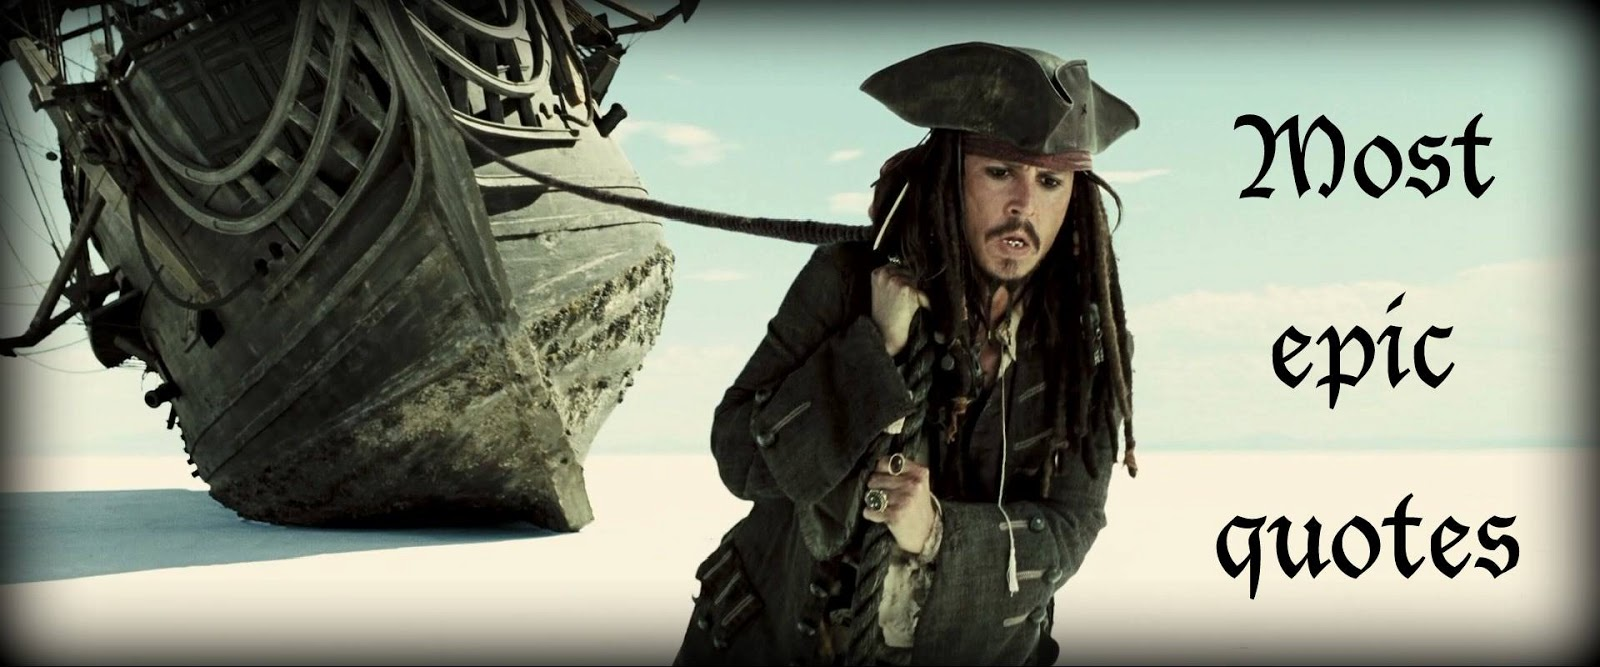 Captain Jack Sparrow Quotes The Bente Way Of Life Moviequotes